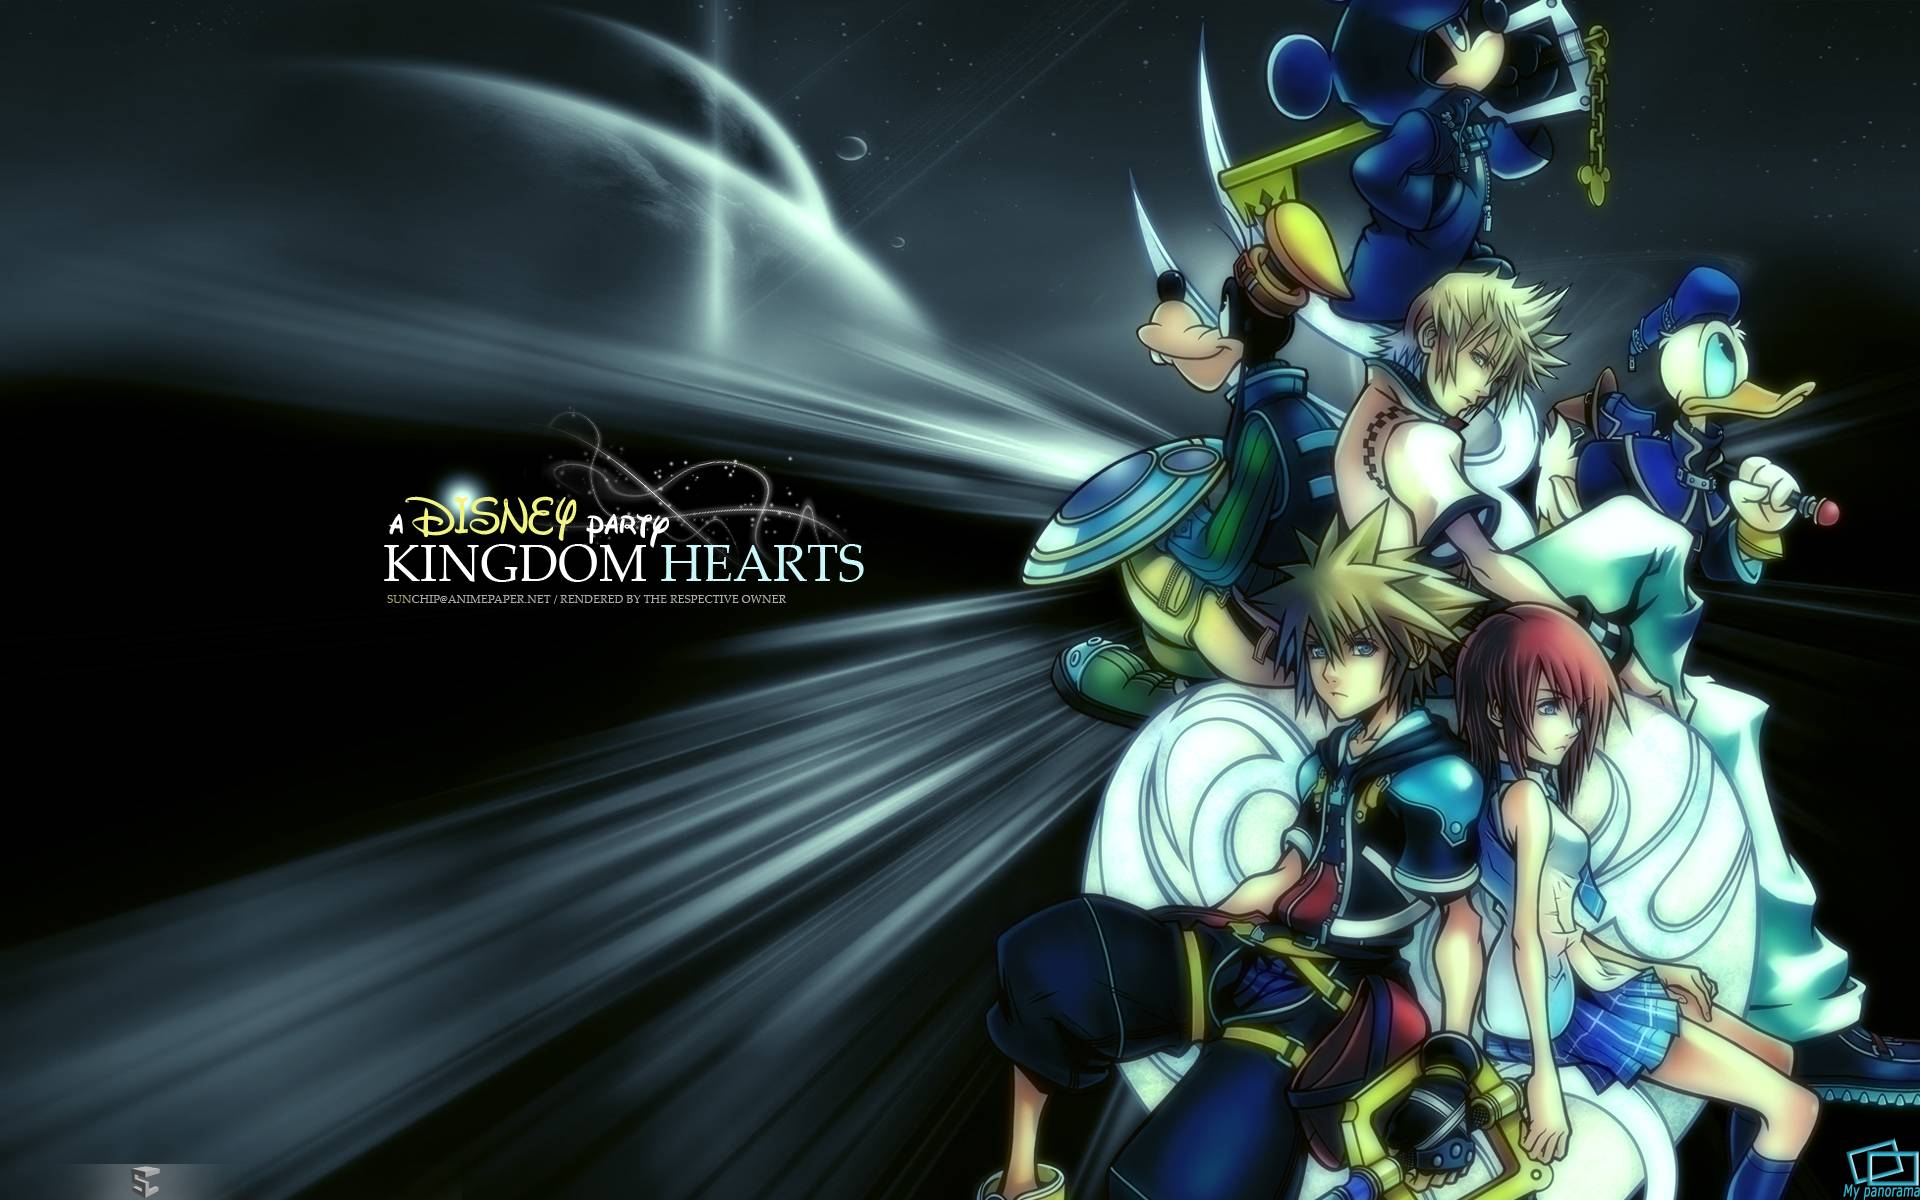 Kingdom Hearts 2 wallpapers Kingdom Hearts 2 background   Page 14 1920x1200